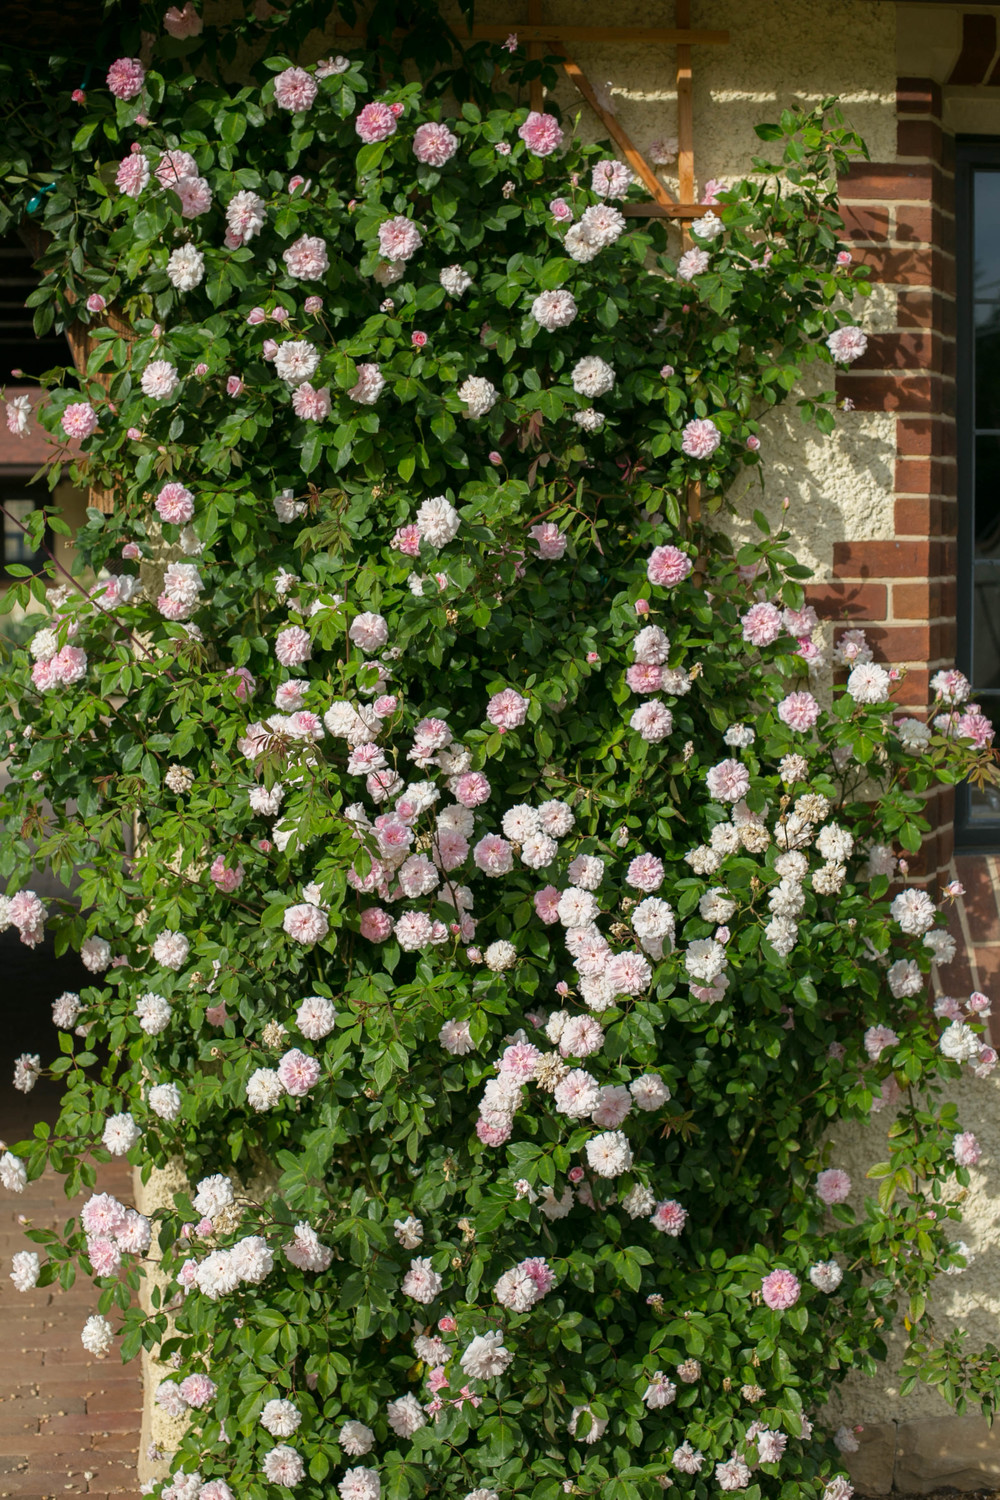 Climbing Rose Mlle Cécile Brünner scrambles up the wall and across the Porte Cochere